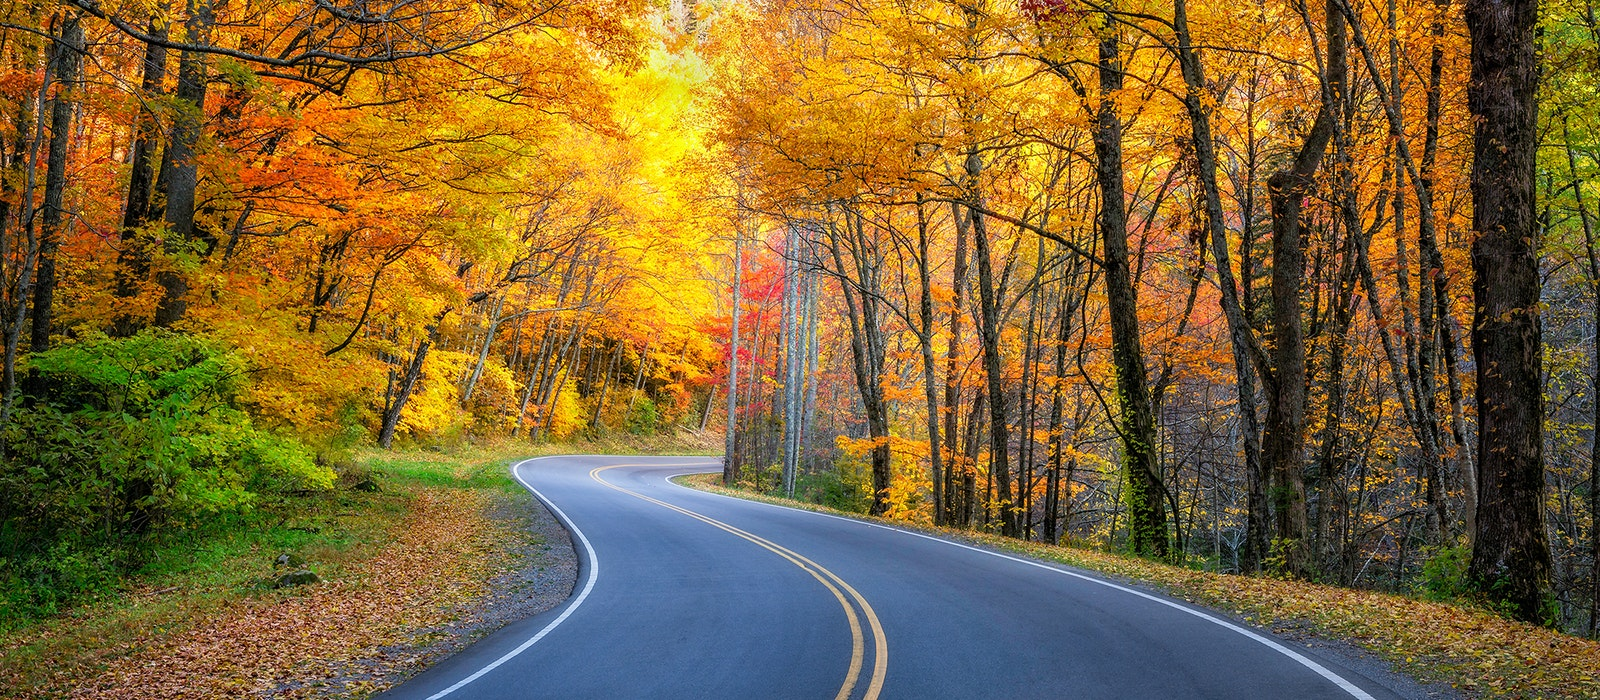 Smoky Mountains Fall Colors Best Time 2020 This Fall Foliage Prediction Map Will Tell You When to Expect Peak